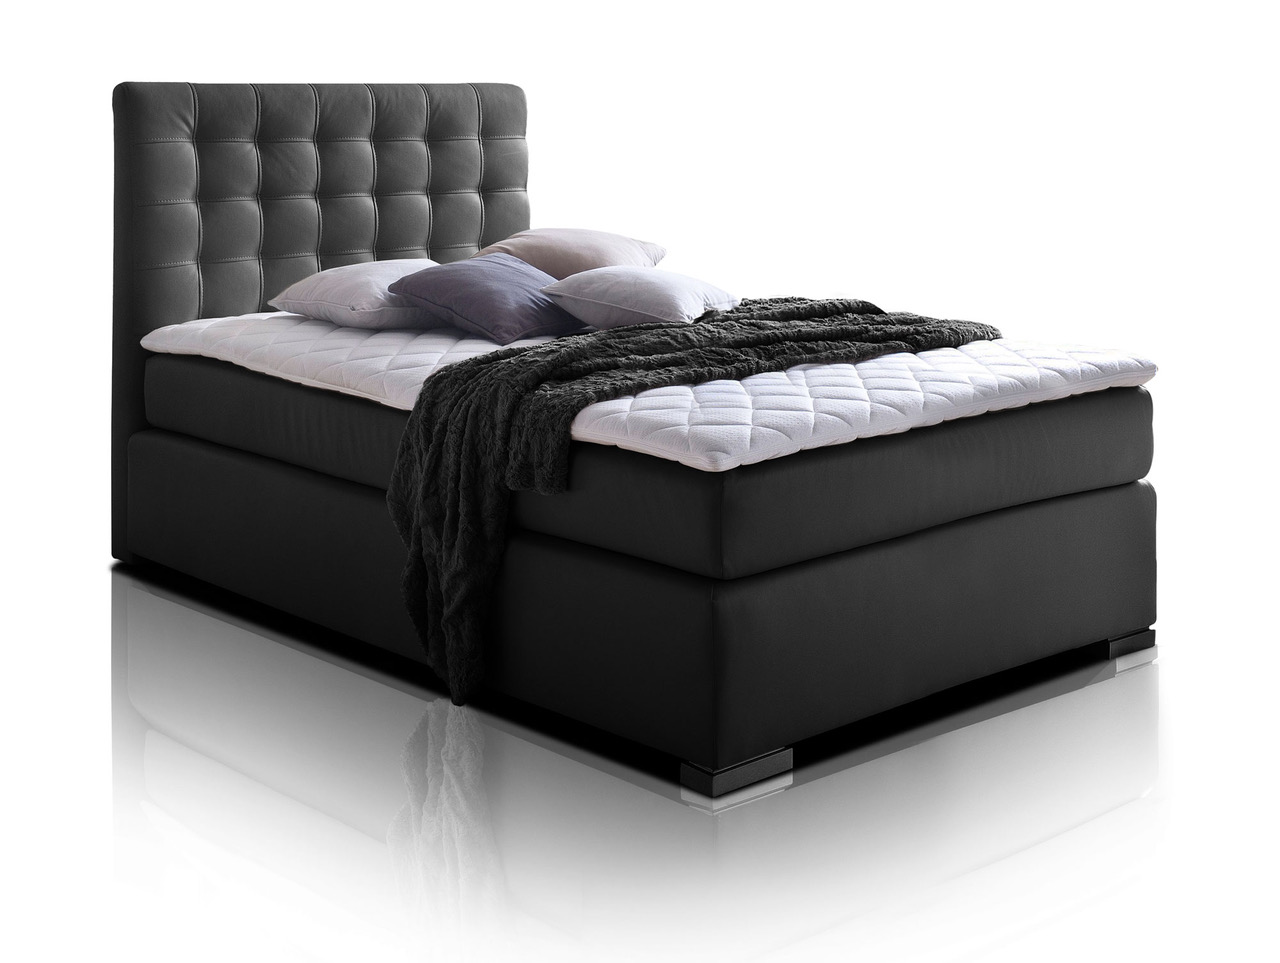 isabell plus boxspringbett 90 x 200 cm schwarz h rtegrad 2. Black Bedroom Furniture Sets. Home Design Ideas